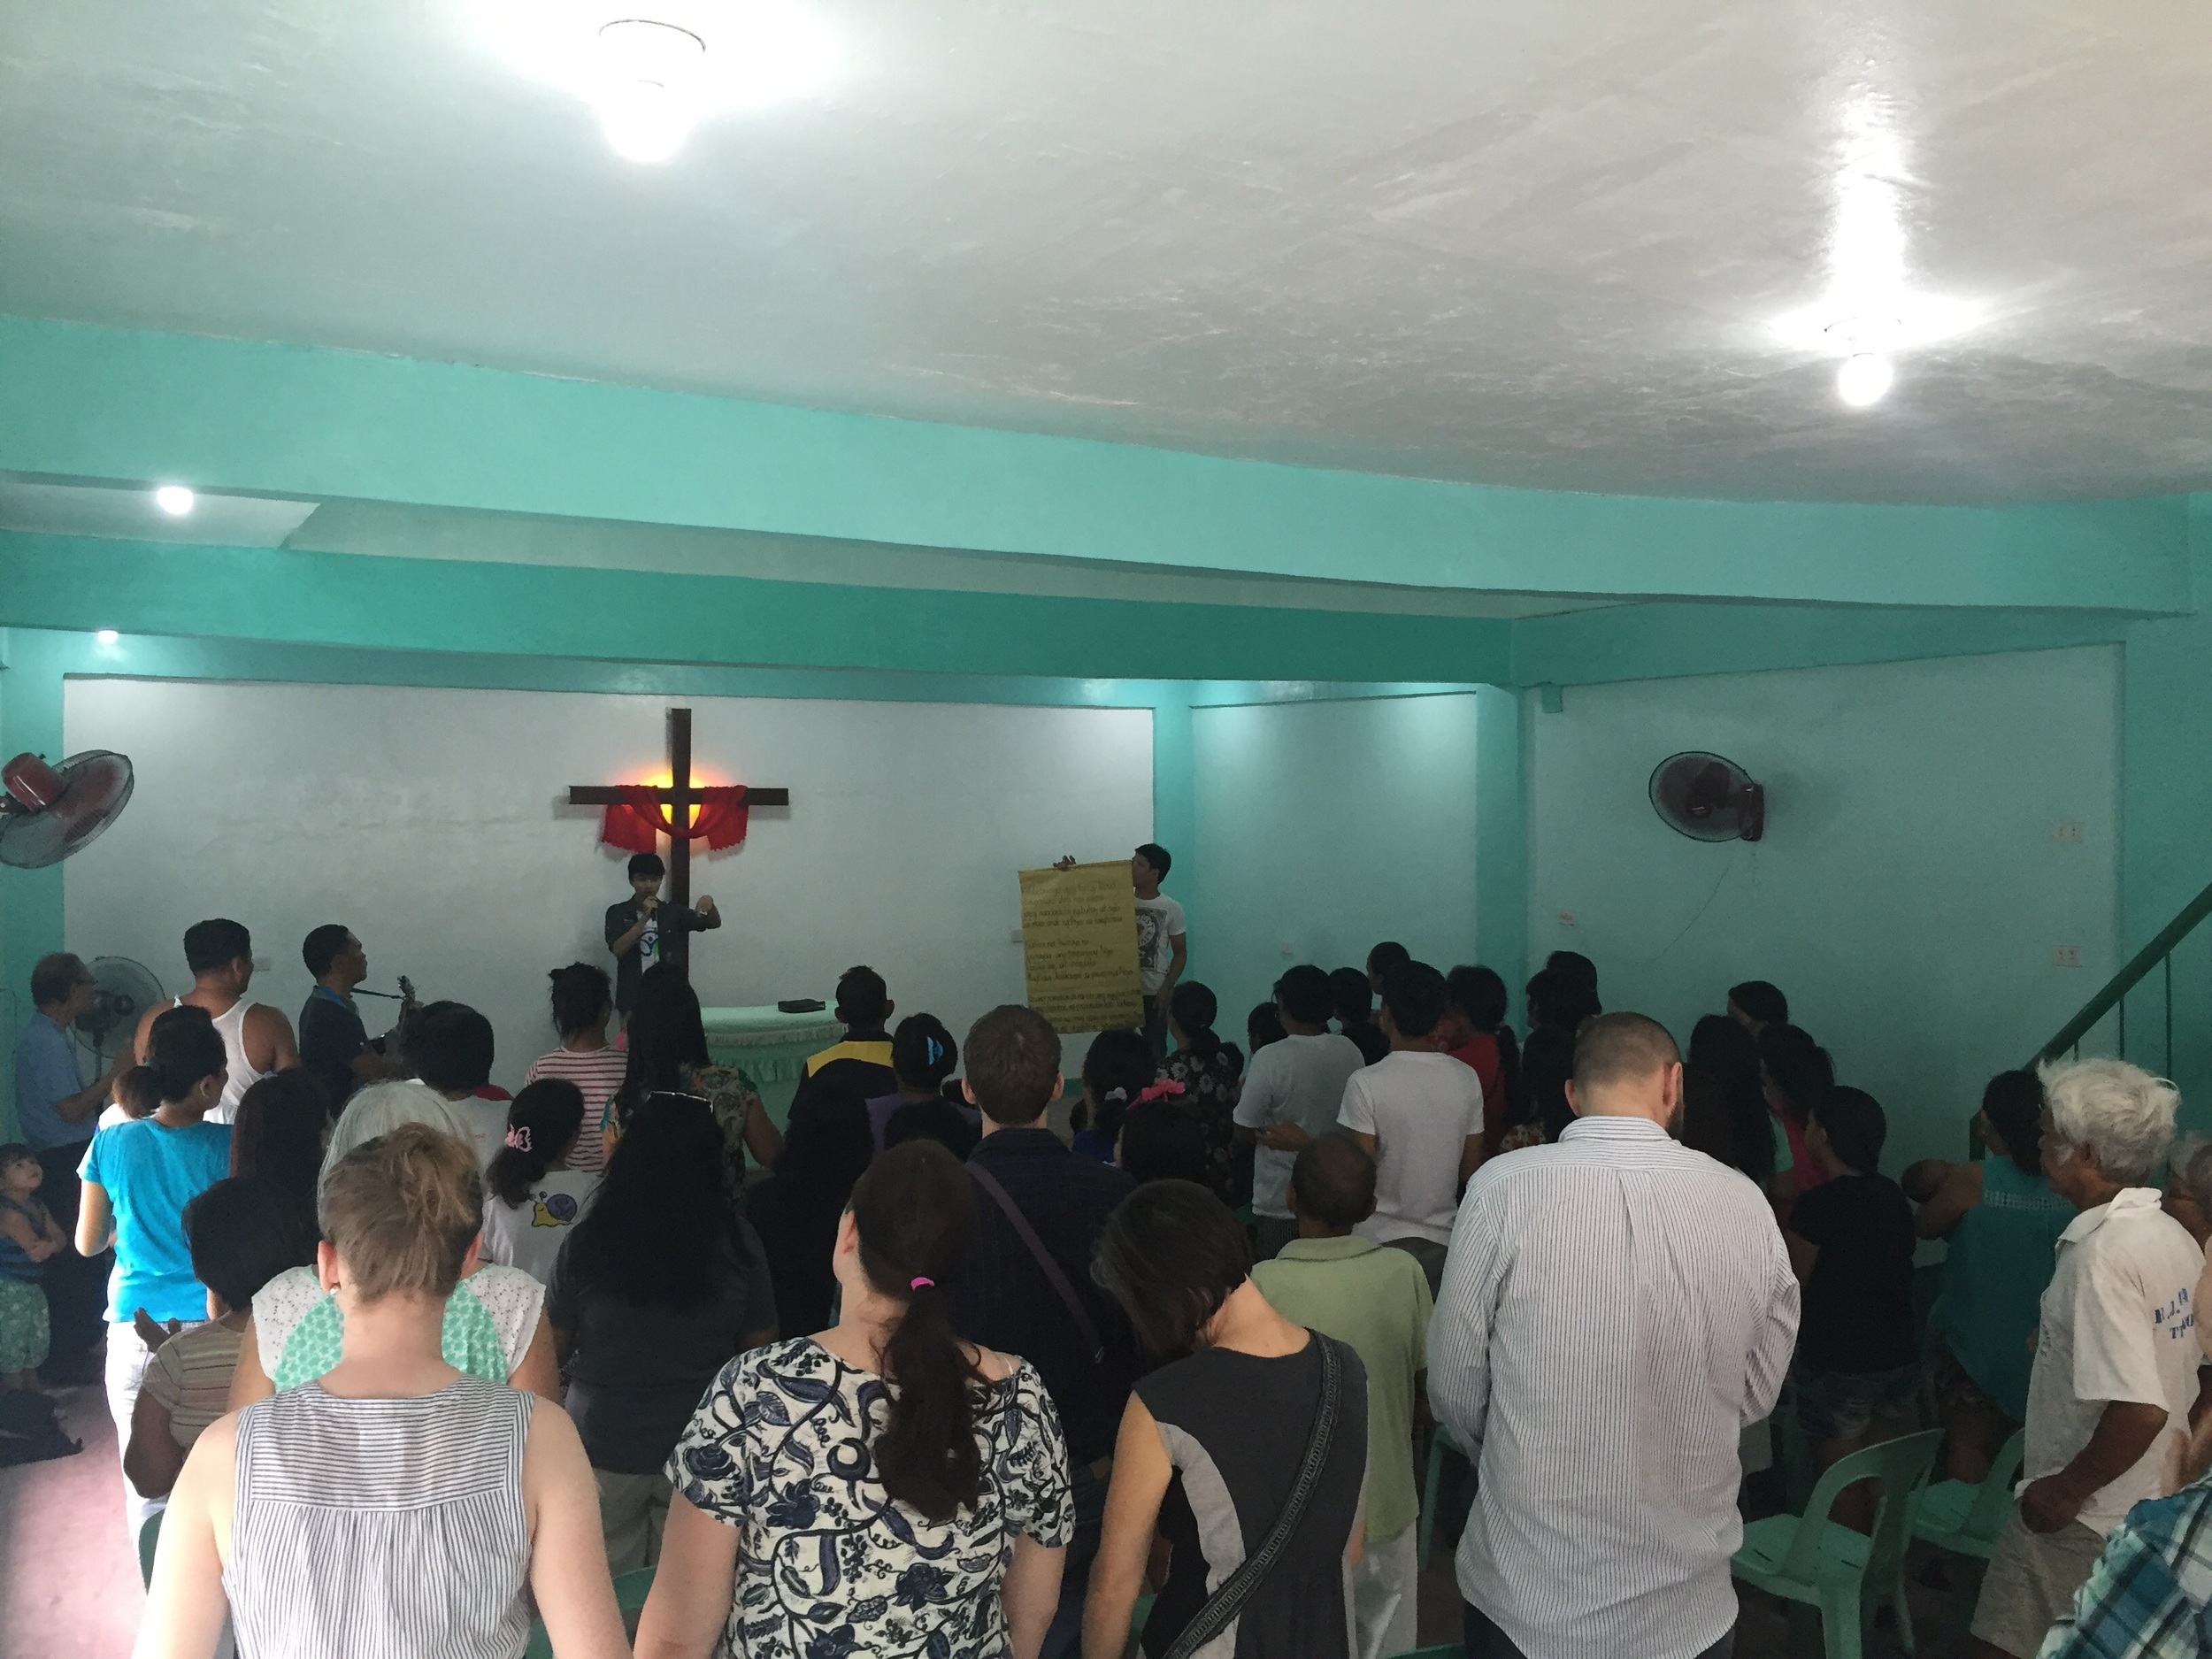 PV church service